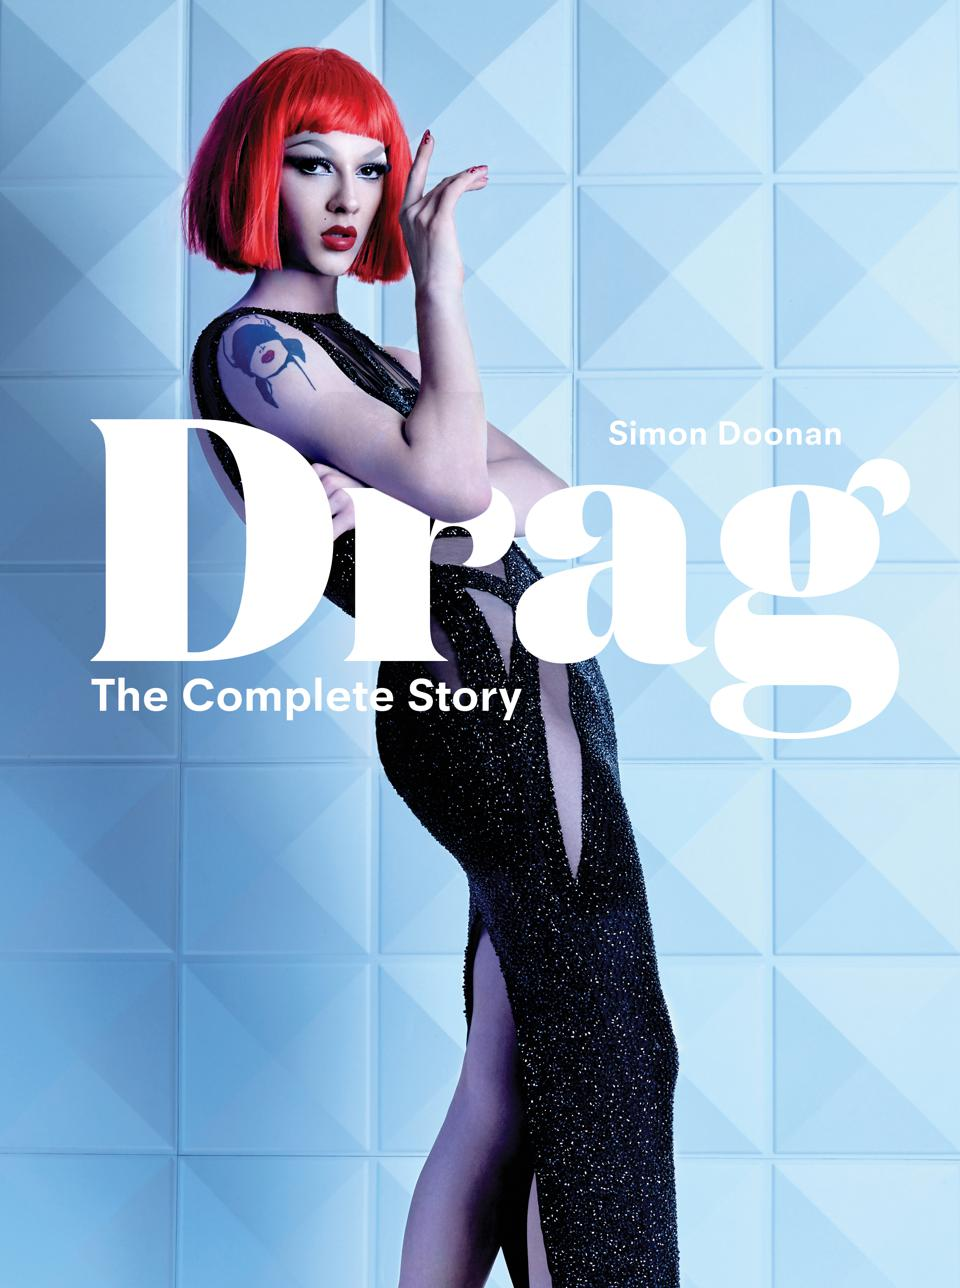 How Simon Doonan Wrote The Complete History Of Drag